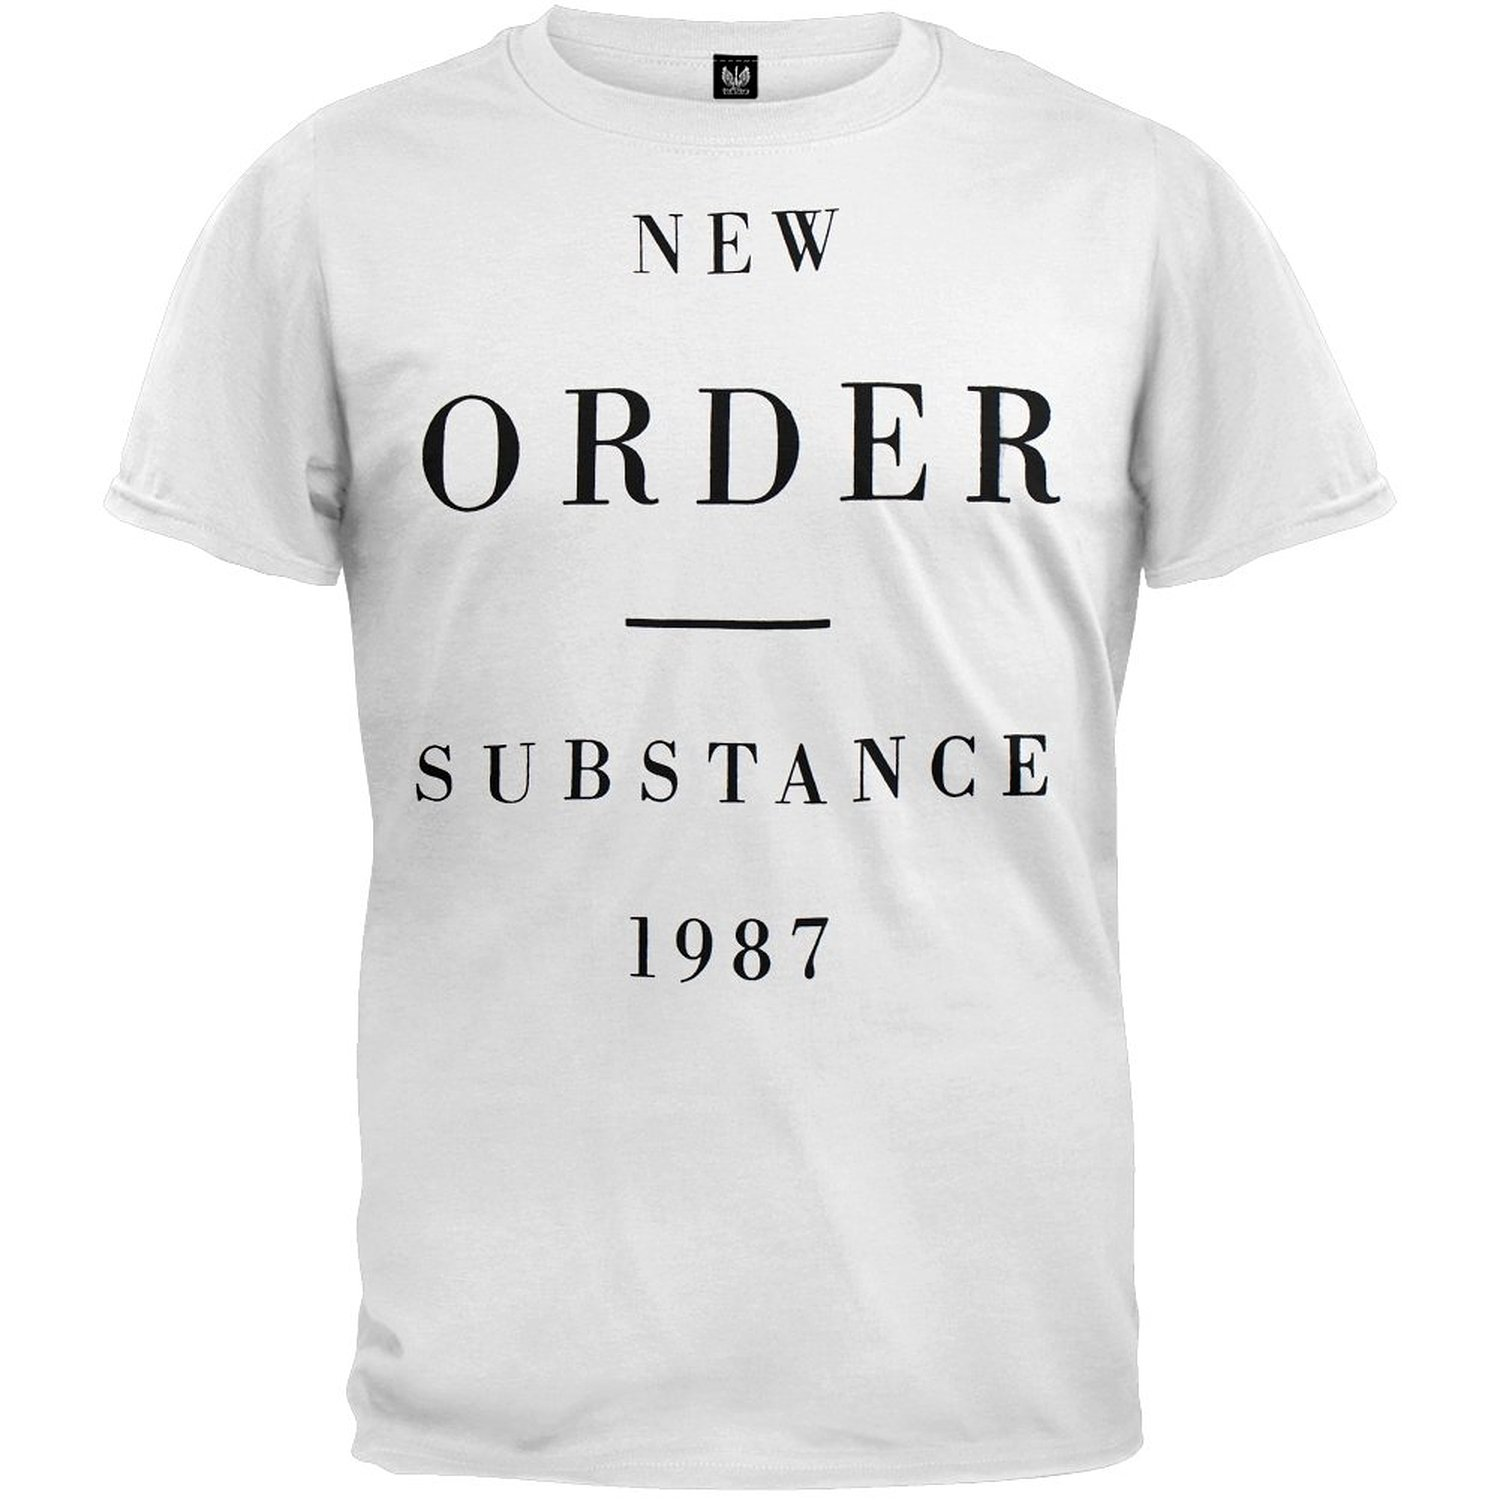 Amazon.com: New Order Substance 1987 Mens T-shirt: Clothing